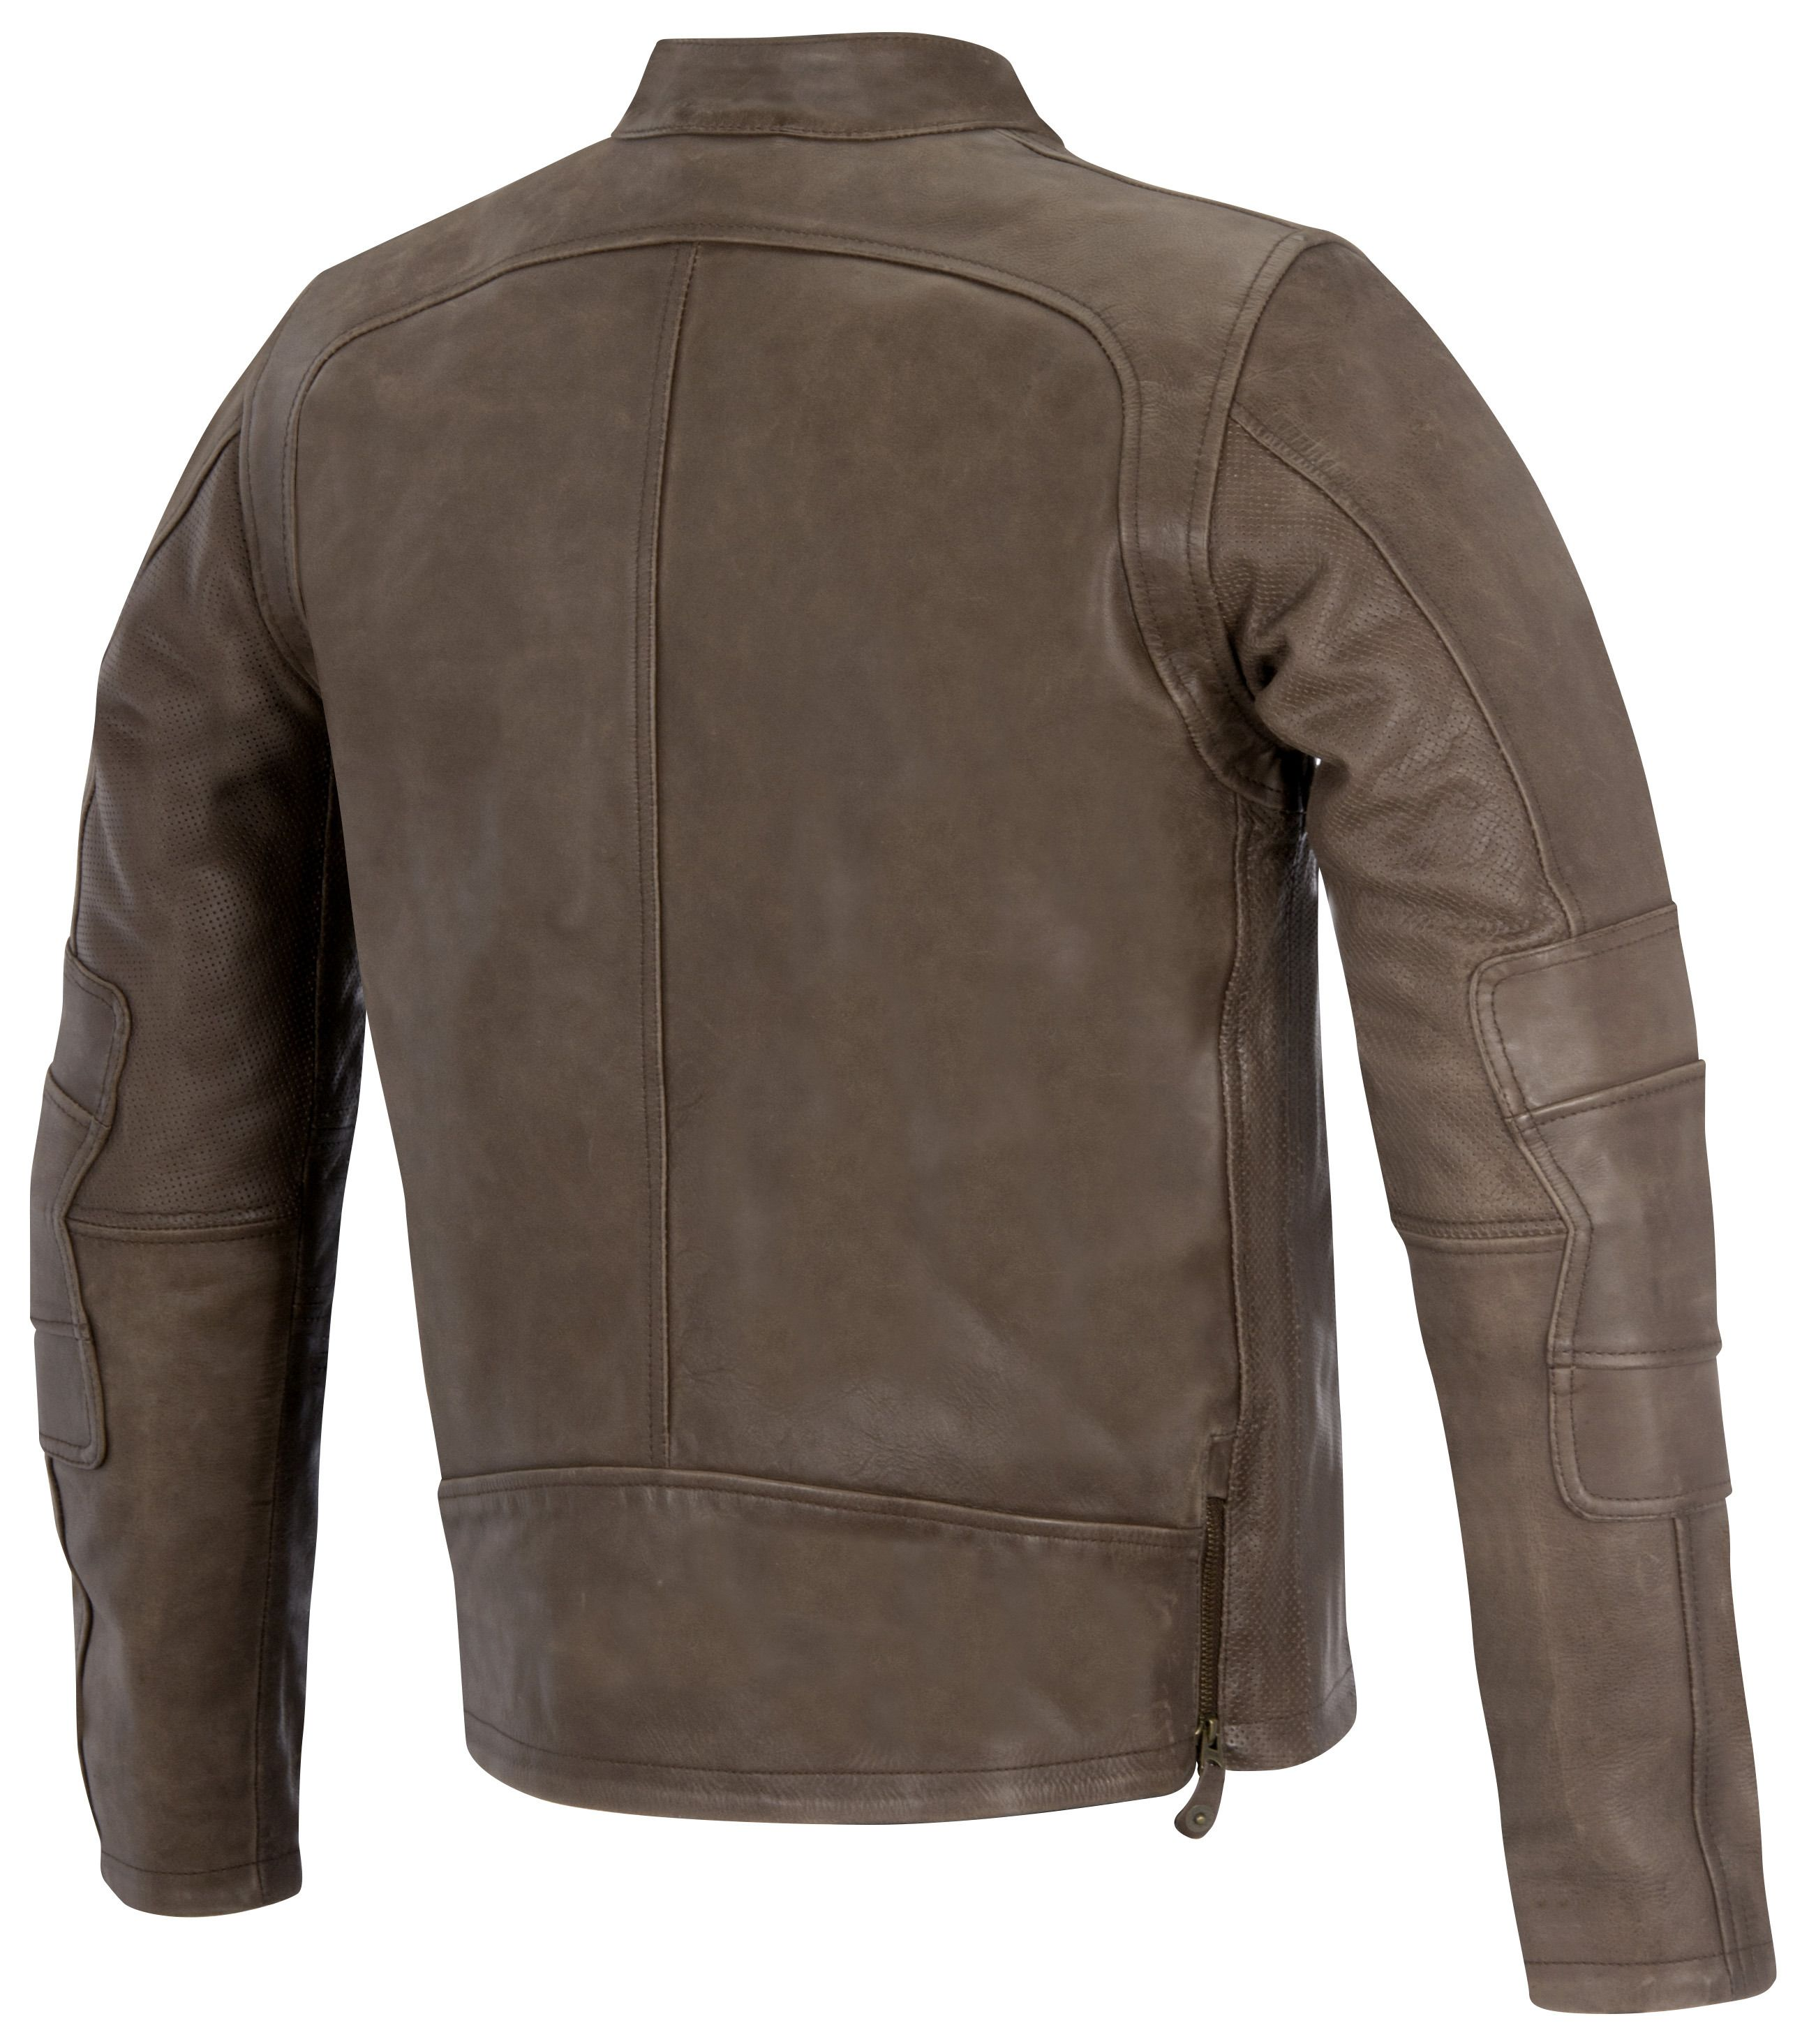 Clothing, Shoes & Accessories Brown Washed Leather Jacket With Buttons And Lacing Detail Size S To Ensure Smooth Transmission